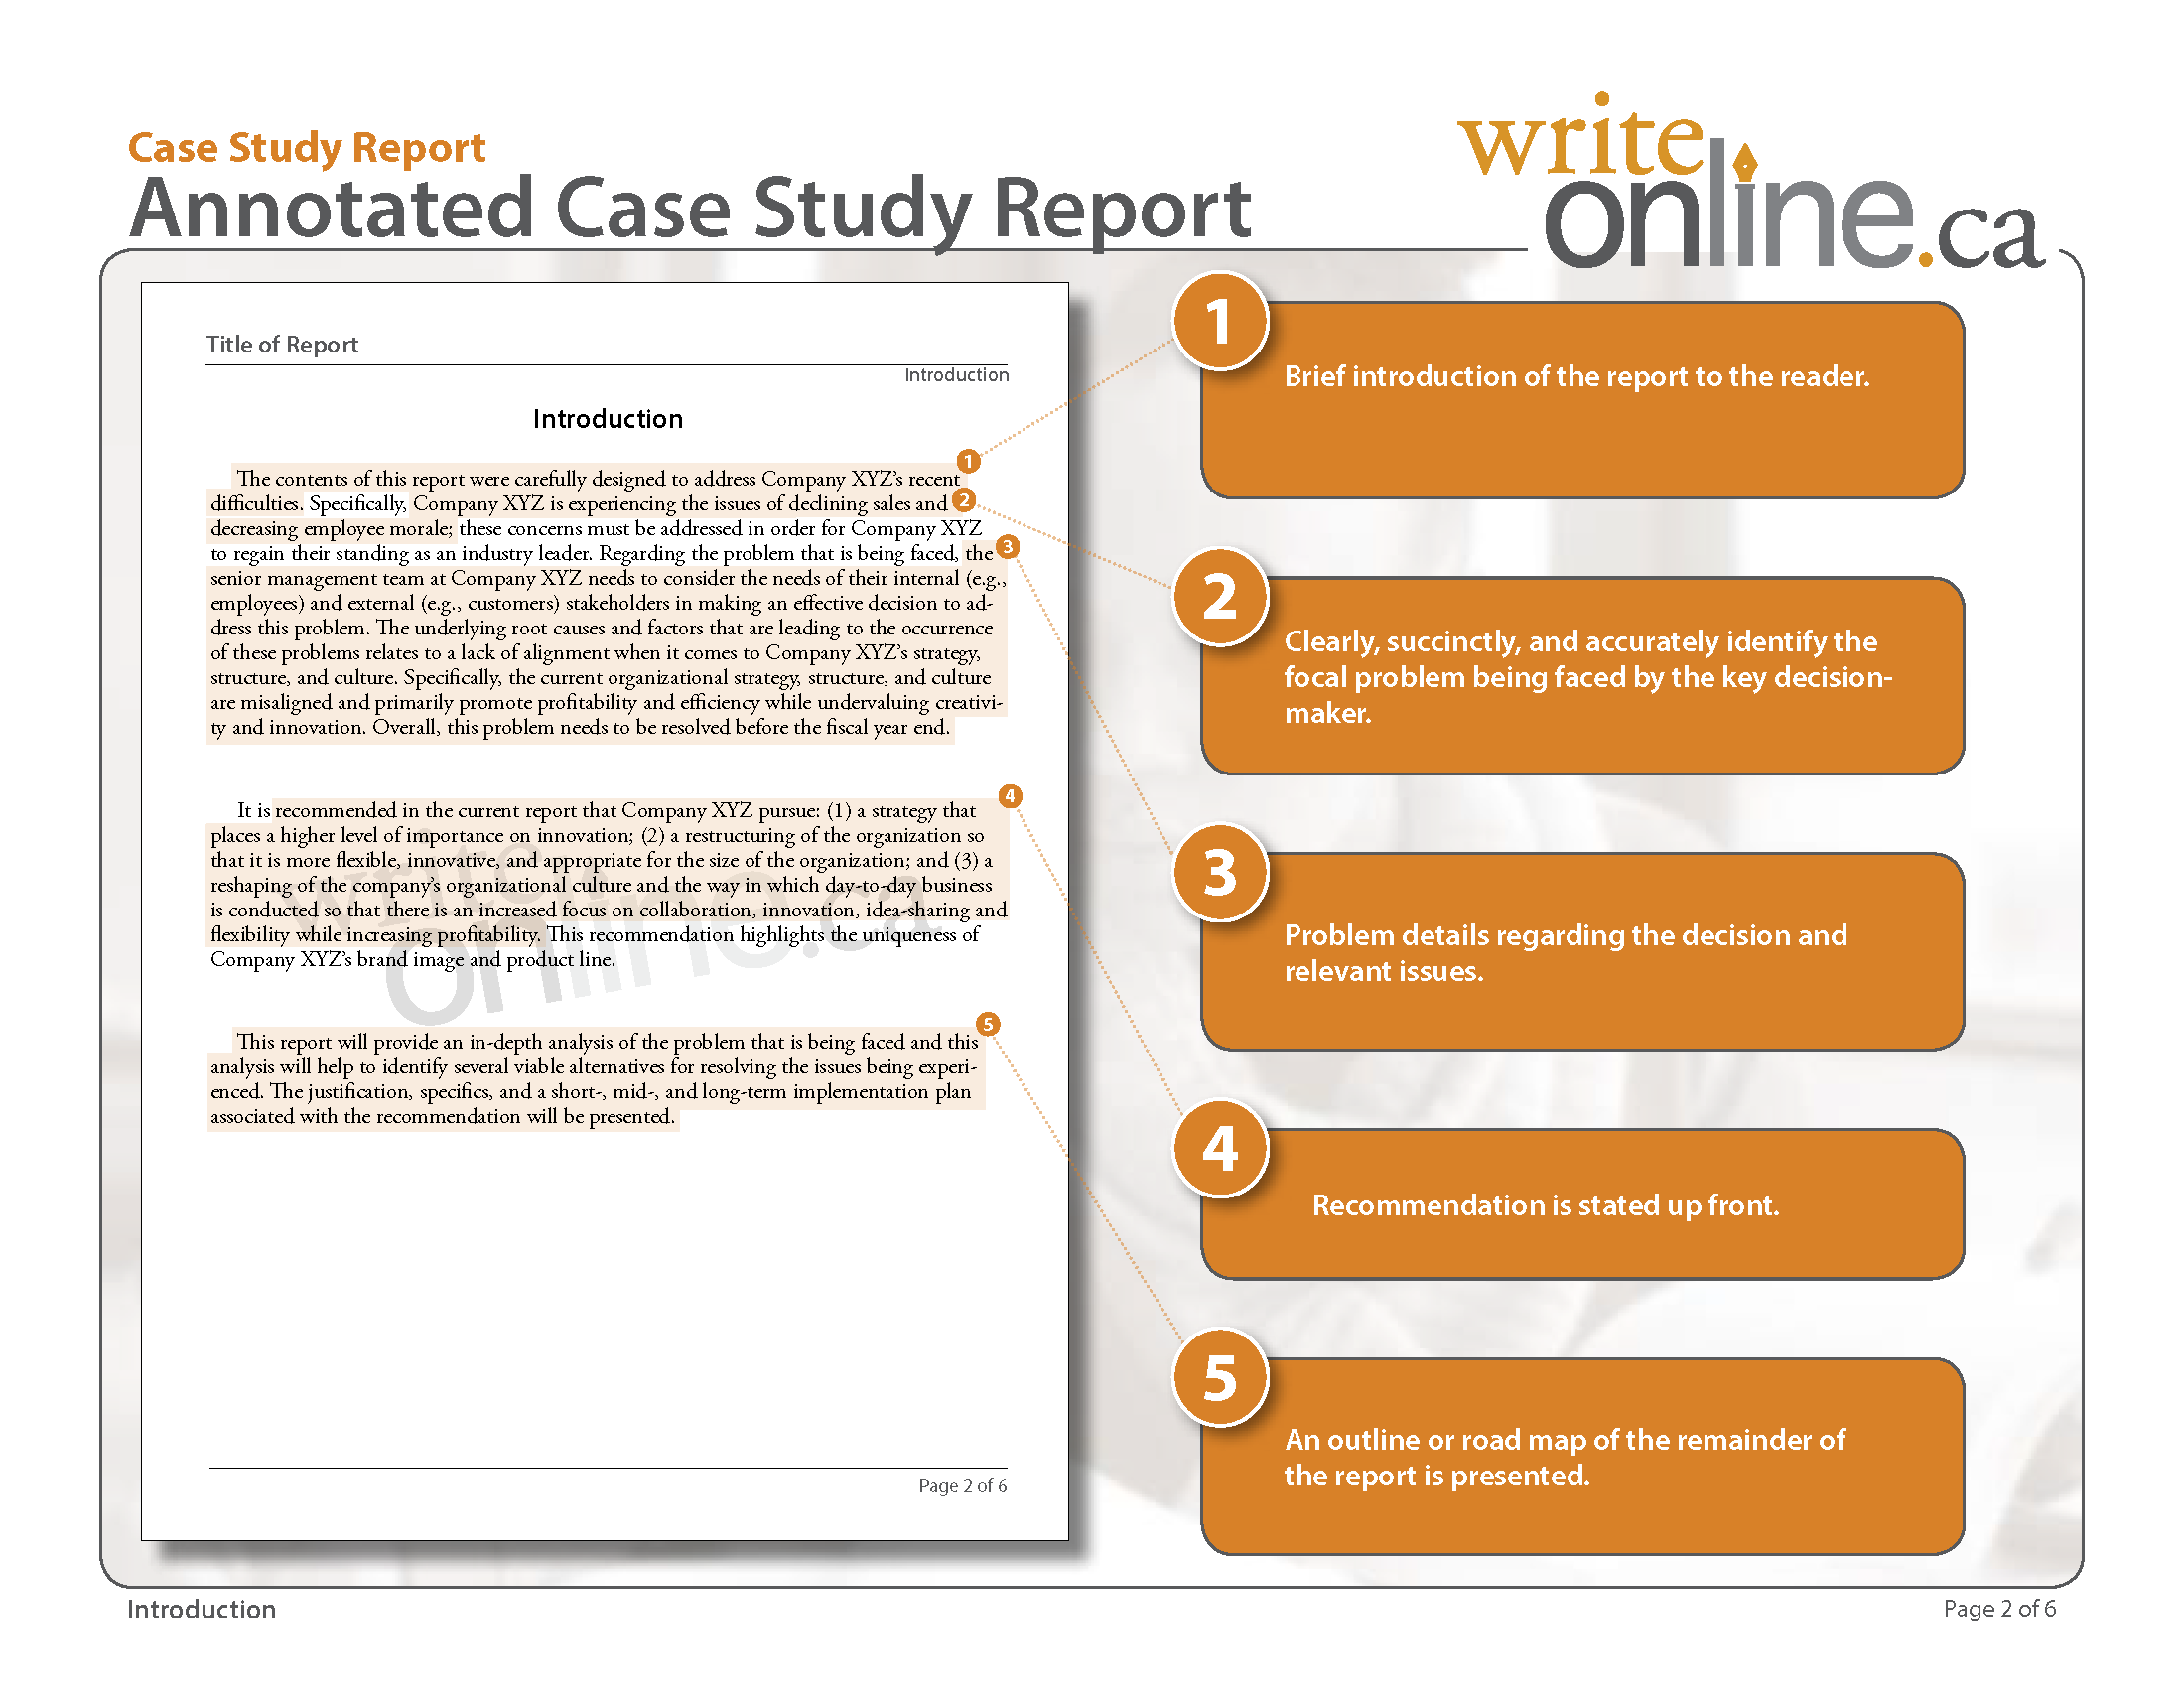 006 Research Paper Casestudy Annotatedfull Page 2 Parts Of And Its Definition Staggering A Pdf Full